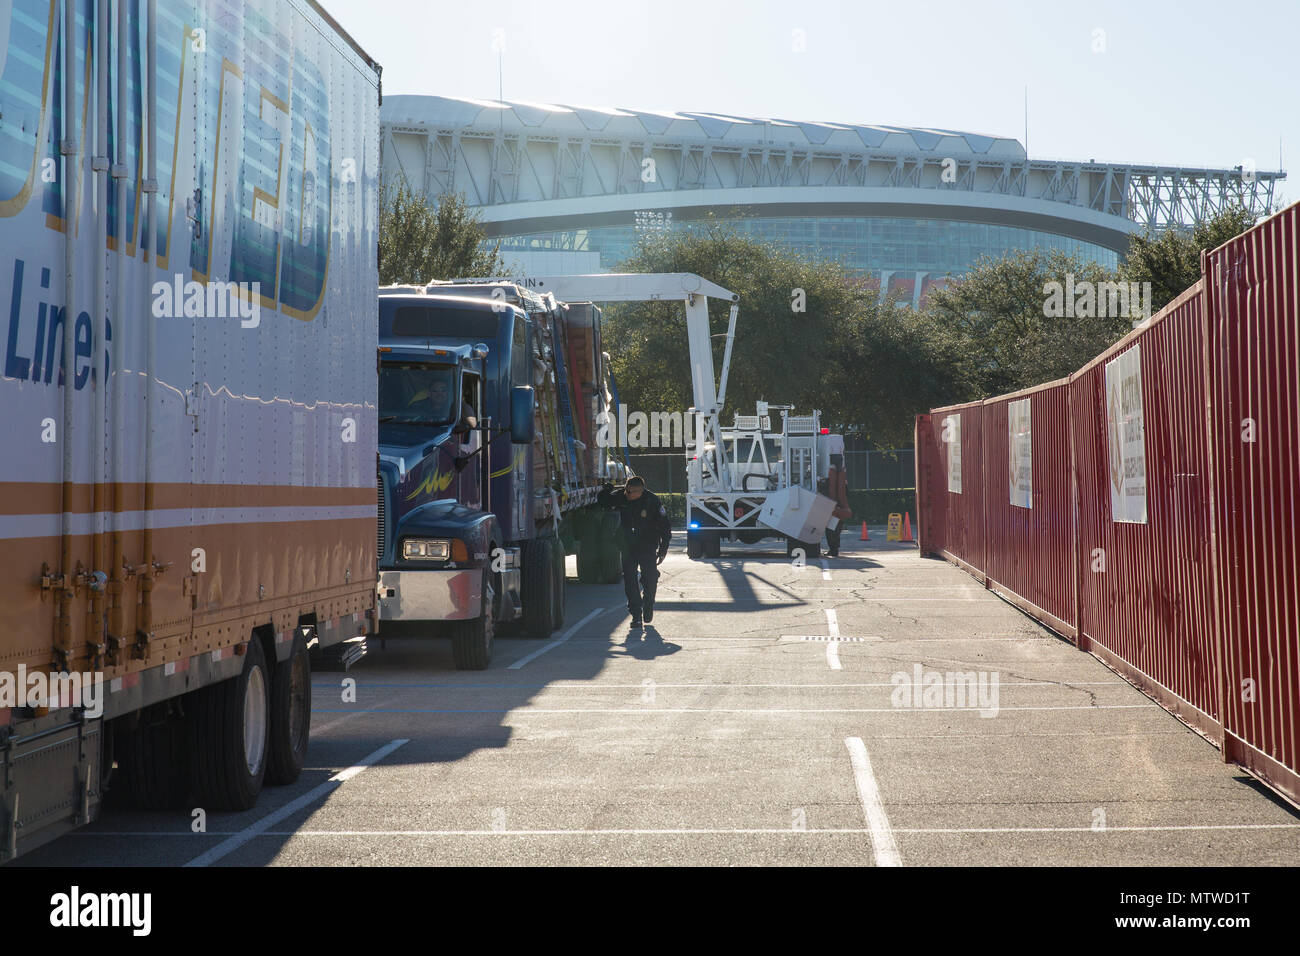 Trucks stand in a line as officers with the U.S. Customs and Border Protection Office of Field Operations conduct inspections of commercial trucks and concession vehicles as they arrive at NRG Stadium in preparation for Super Bowl 51 in Houston, Texas, Jan. 30, 2017. Vehicles are scanned by x-ray prior to entry into the main stadium facilities. U.S. Customs and Border Protection Photo by Ozzy Trevino - Stock Image